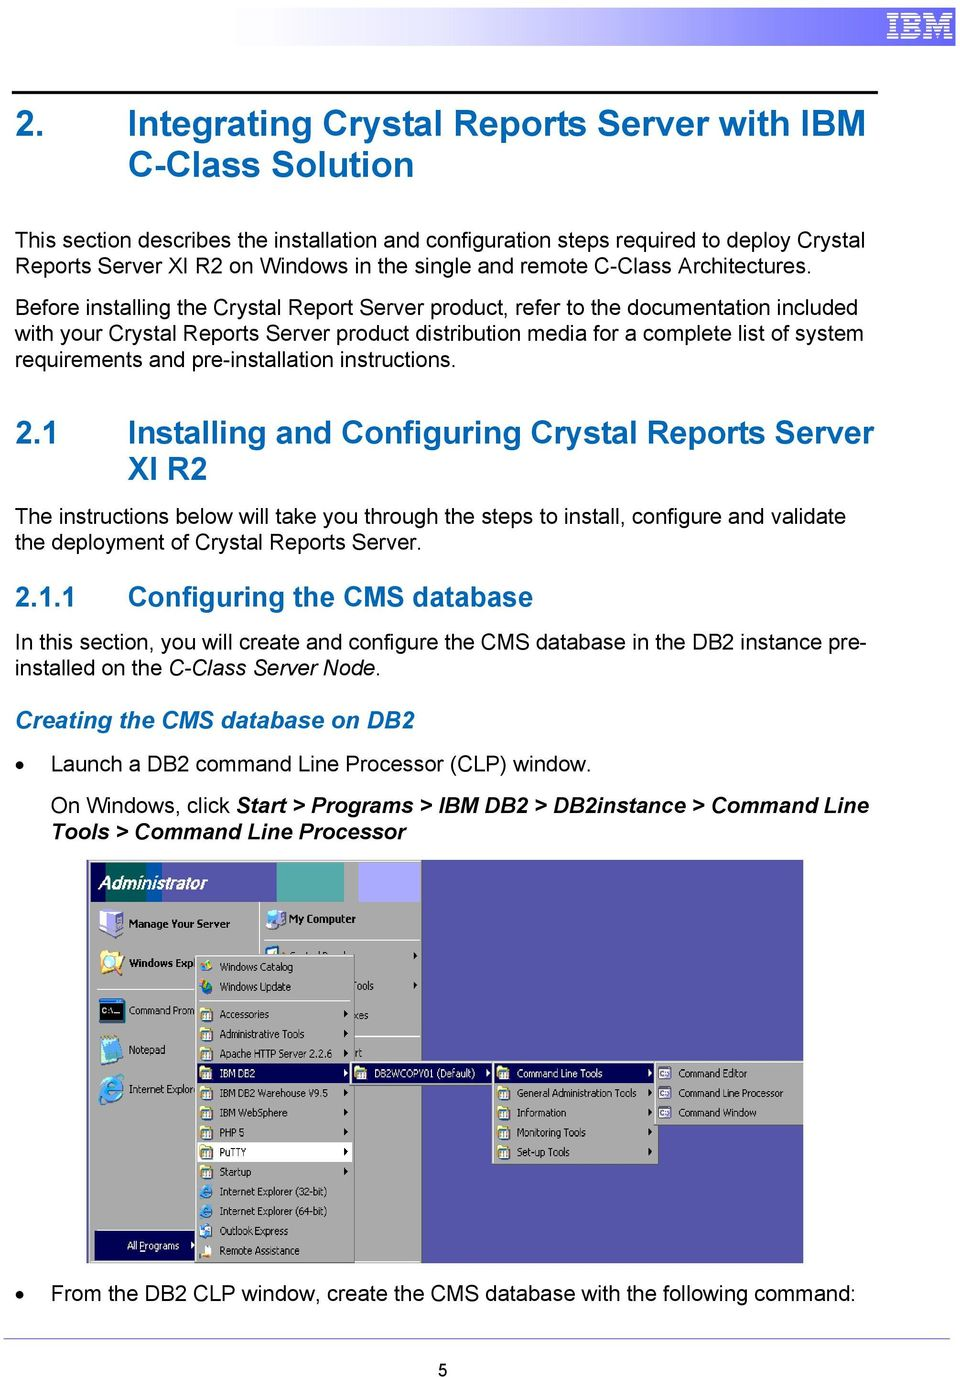 Before installing the Crystal Report Server product, refer to the documentation included with your Crystal Reports Server product distribution media for a complete list of system requirements and